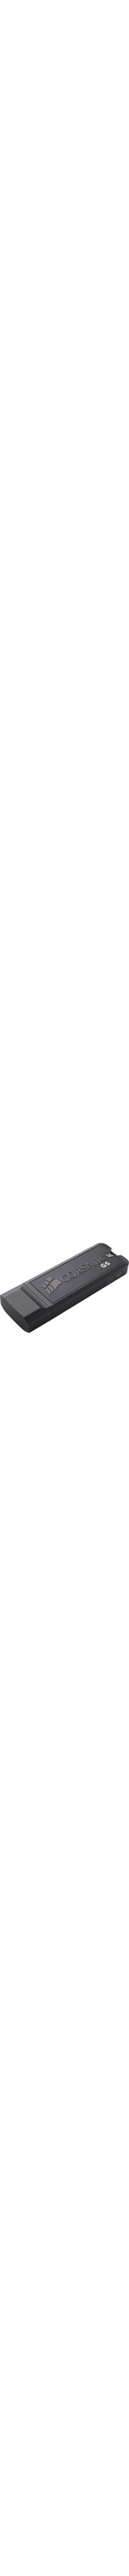 Corsair Flash Voyager GS 256 GB USB 3.0 Flash Drive